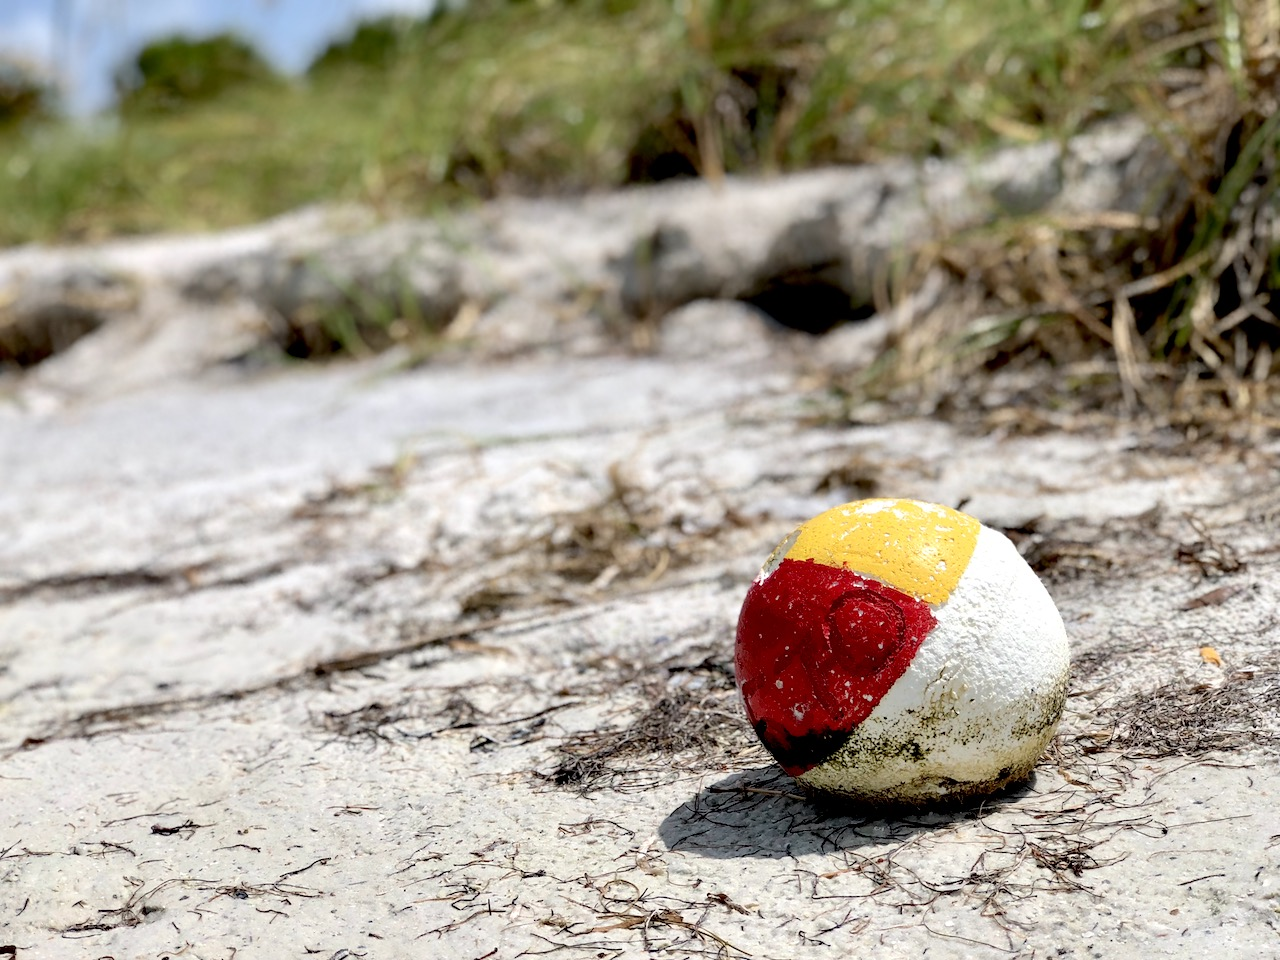 Fort de Soto is one of the most beautiful beaches on the Gulf of Mexico